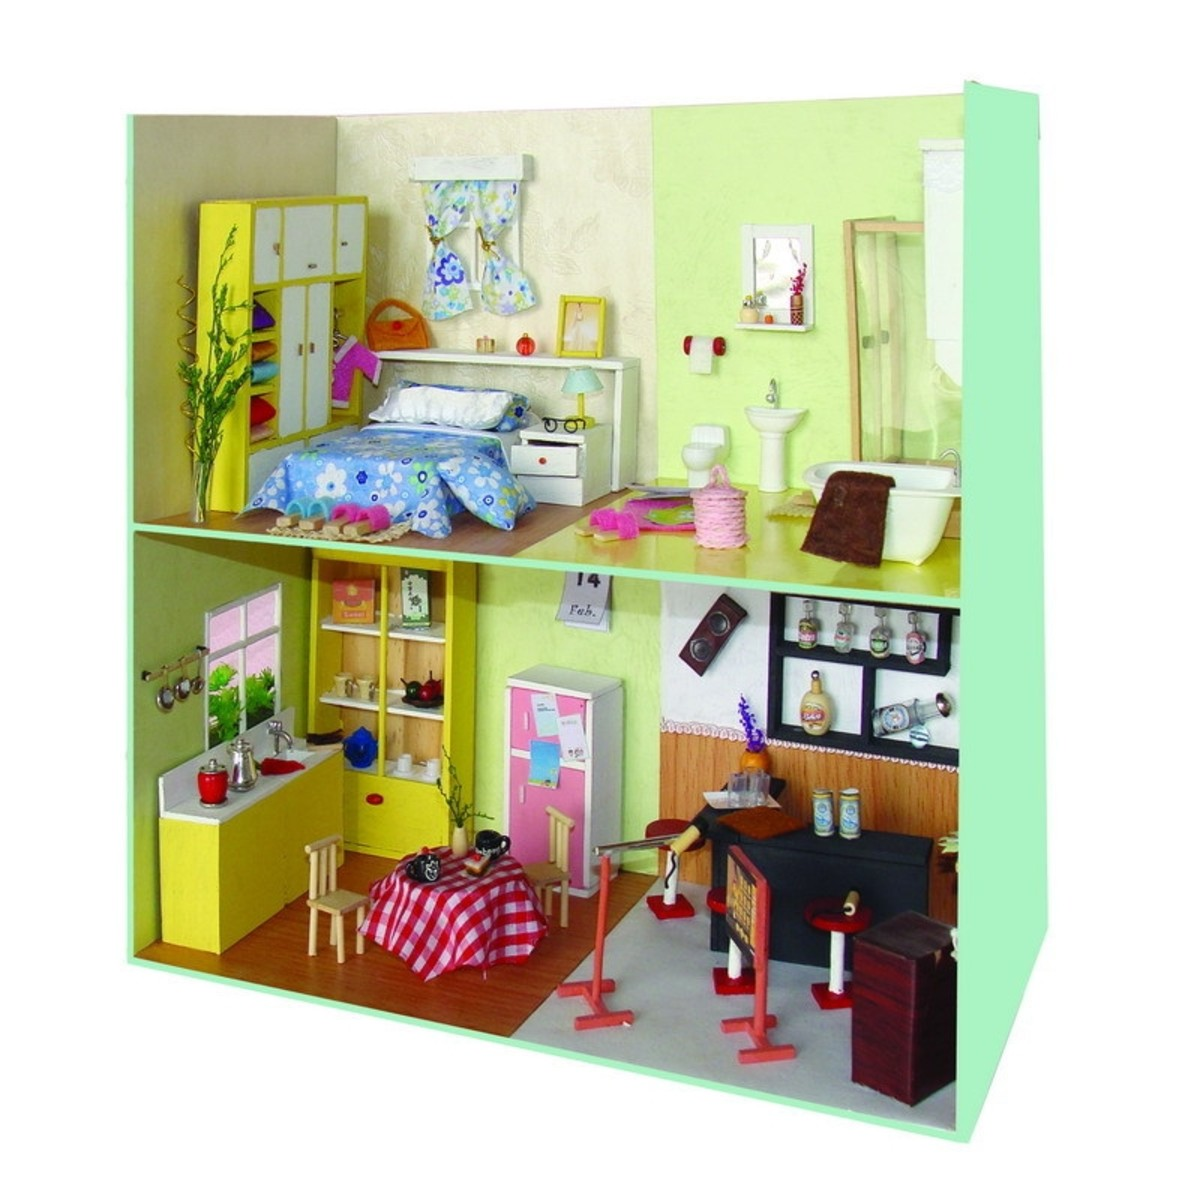 Miniature dolls rooms with simple furniture and furnishings.